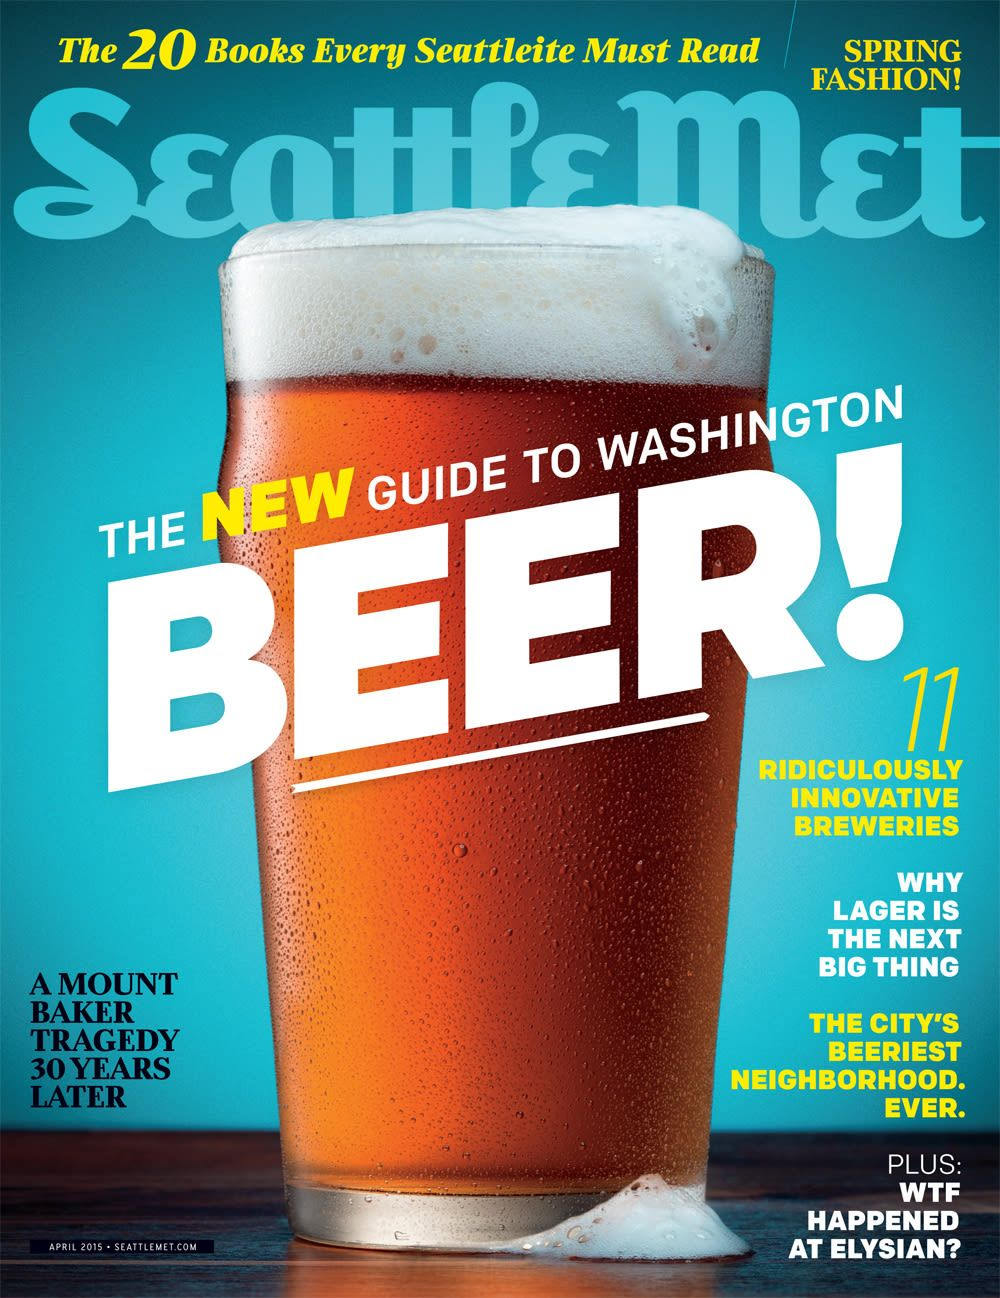 Our April 2015 Issue The New Guide To Washington Beer Beer Magazine Beer Washington